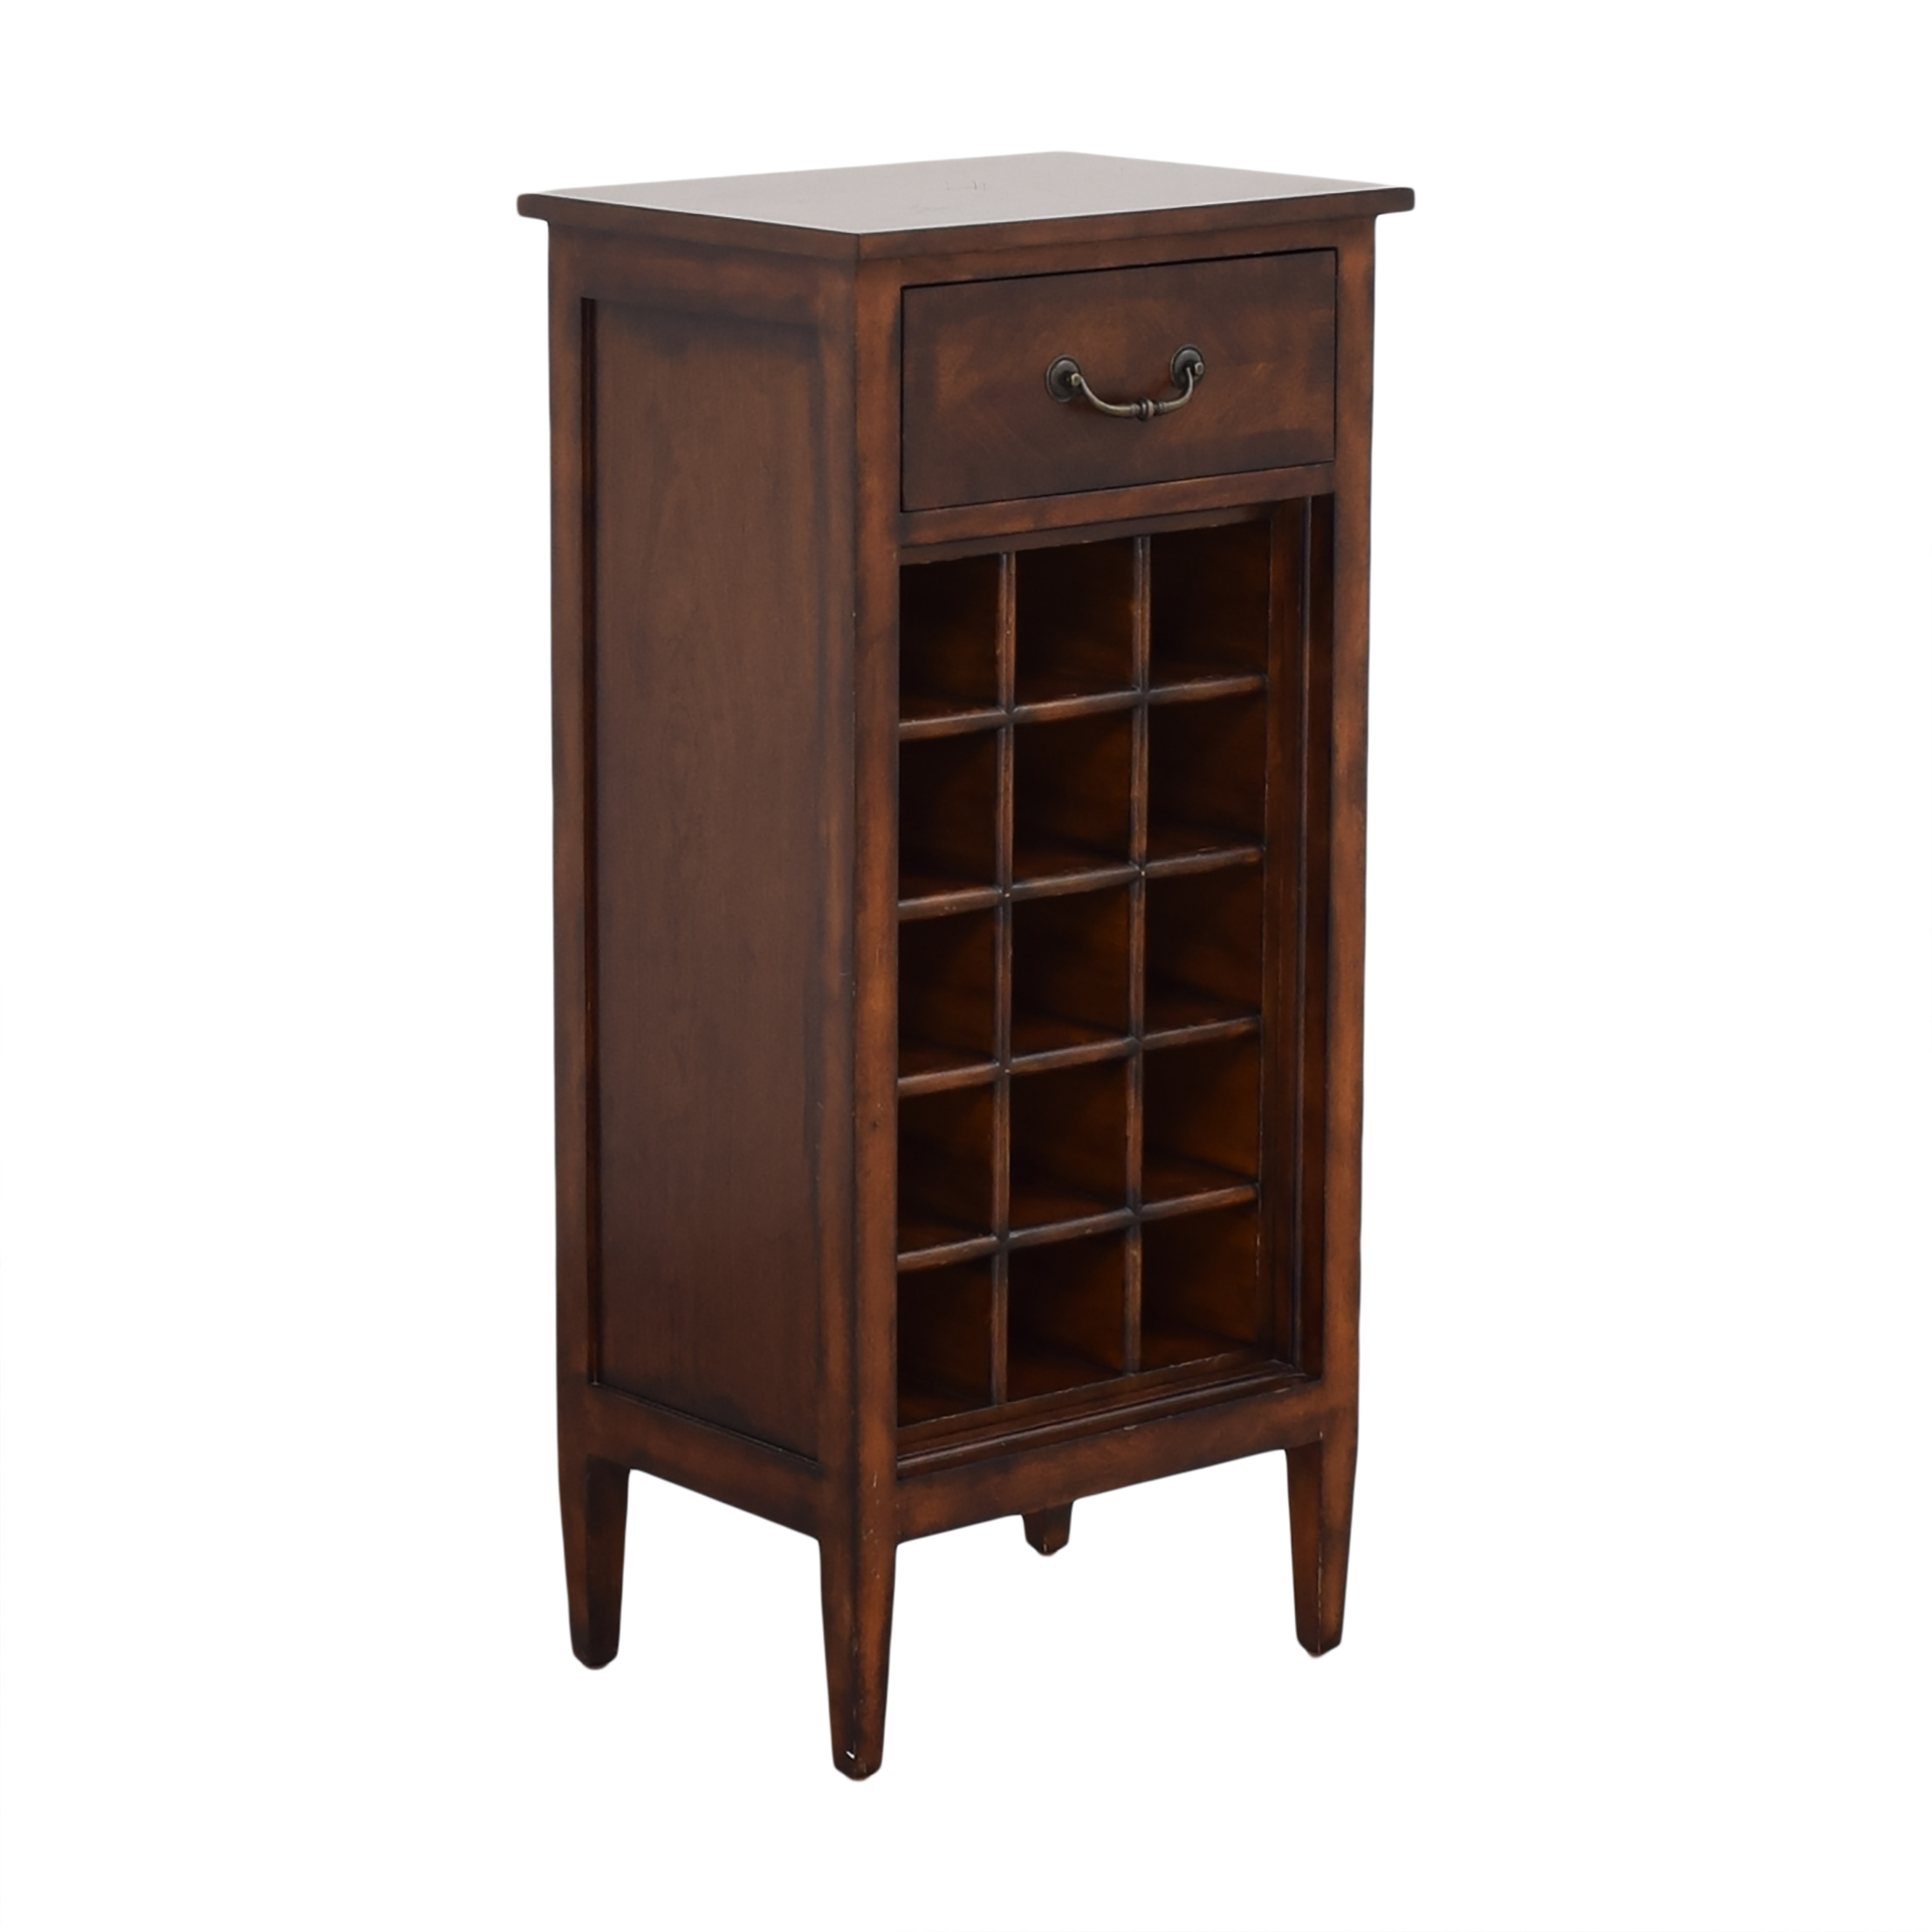 Ethan Allen Ethan Allen Wine Cabinet and Side Table for sale